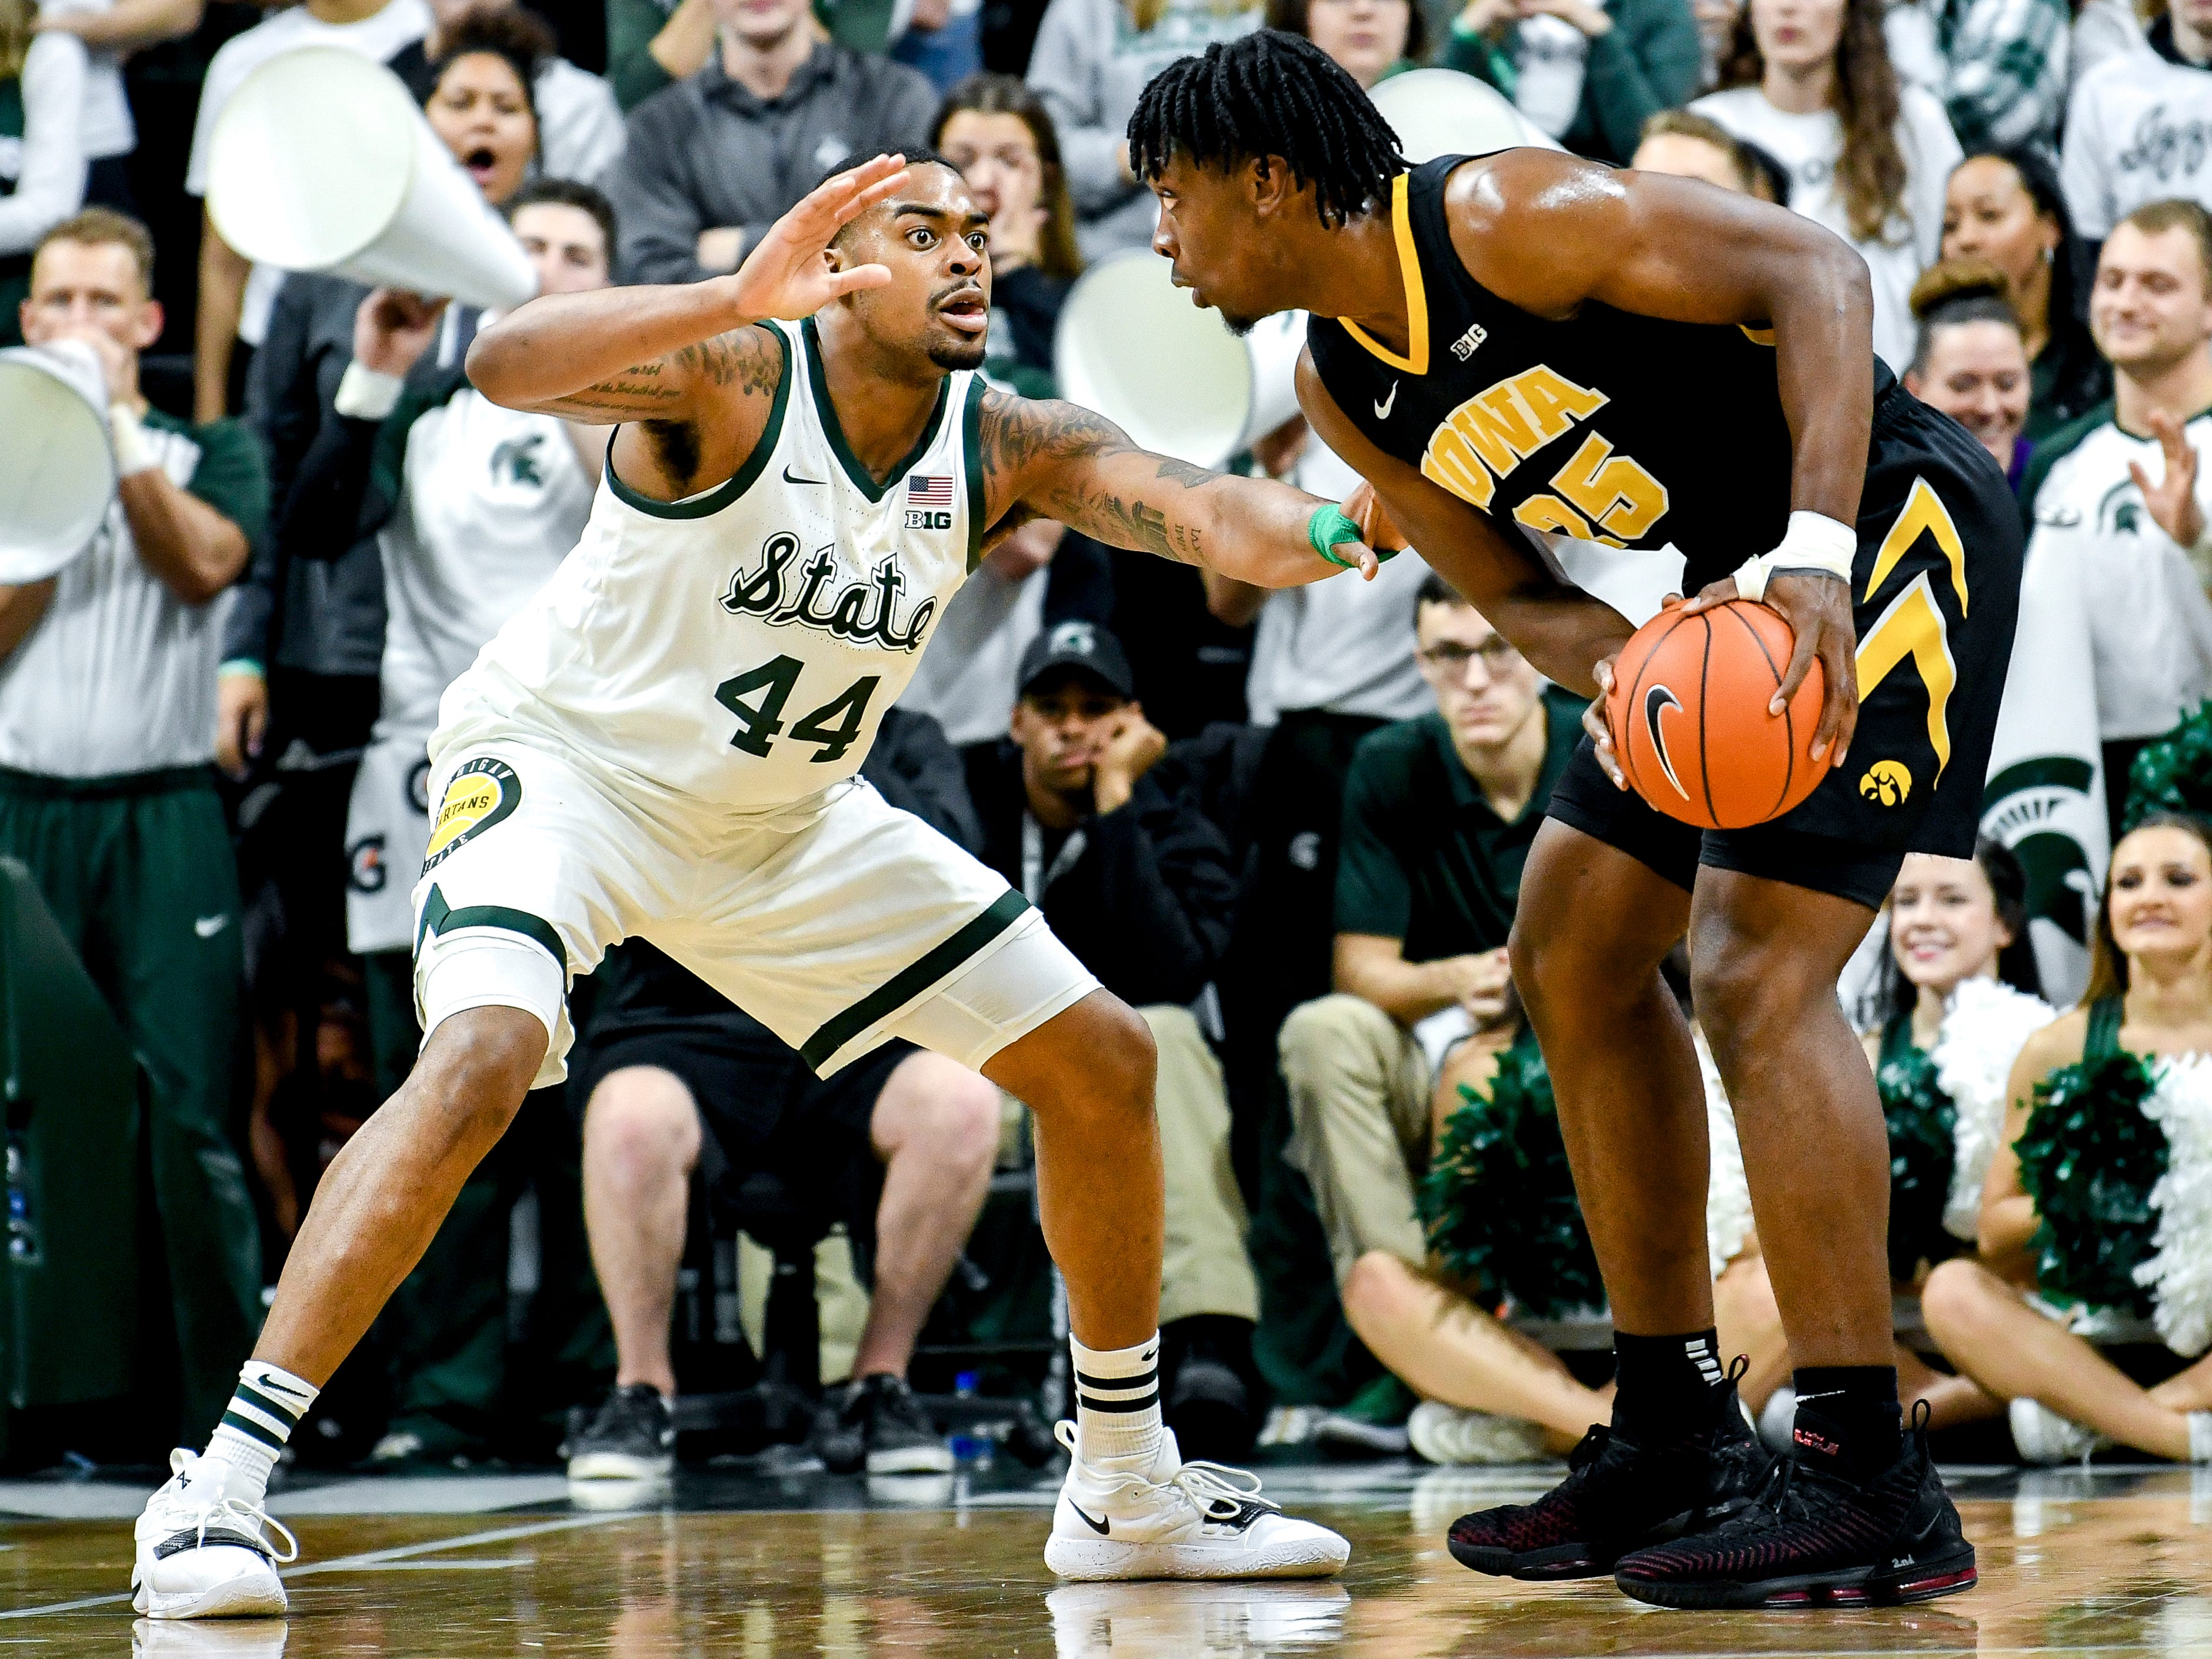 Michigan State's Nick Ward, left, defends Iowa's Tyler Cook during the first half on Monday, Dec. 3, 2018, at the Breslin Center in East Lansing.